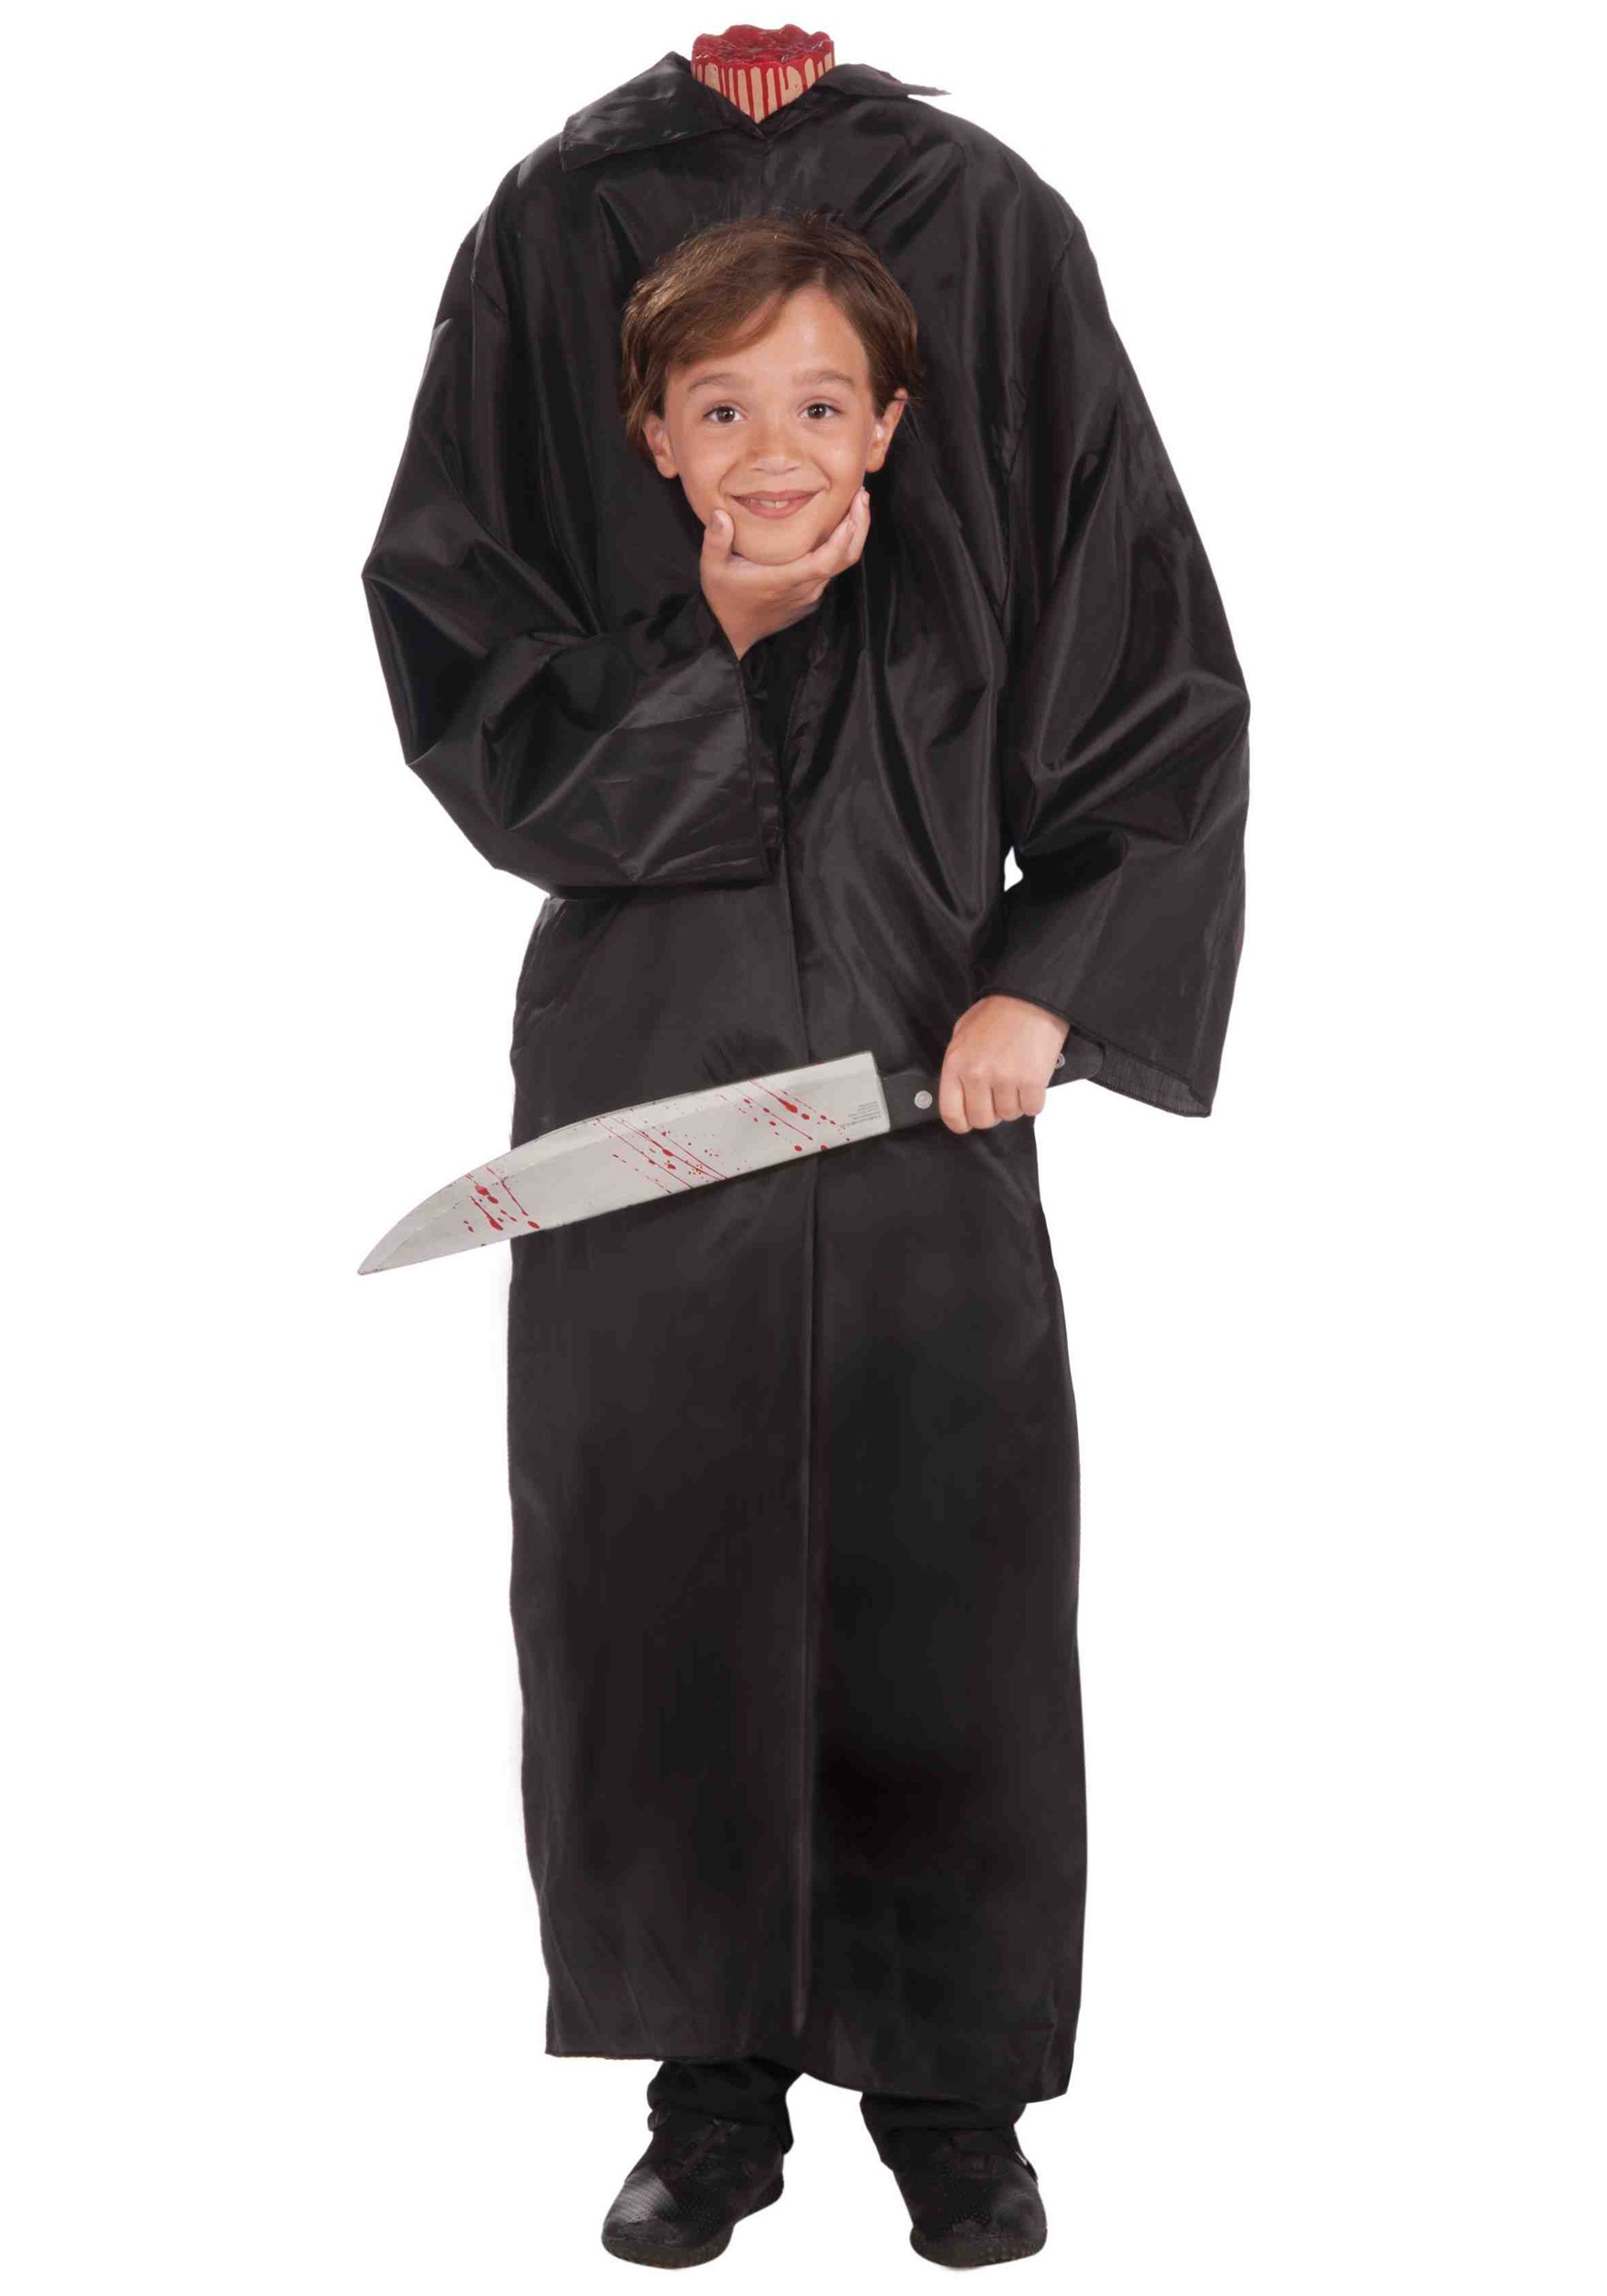 Kids Halloween Costumes Boys Child Headless Boy Costume